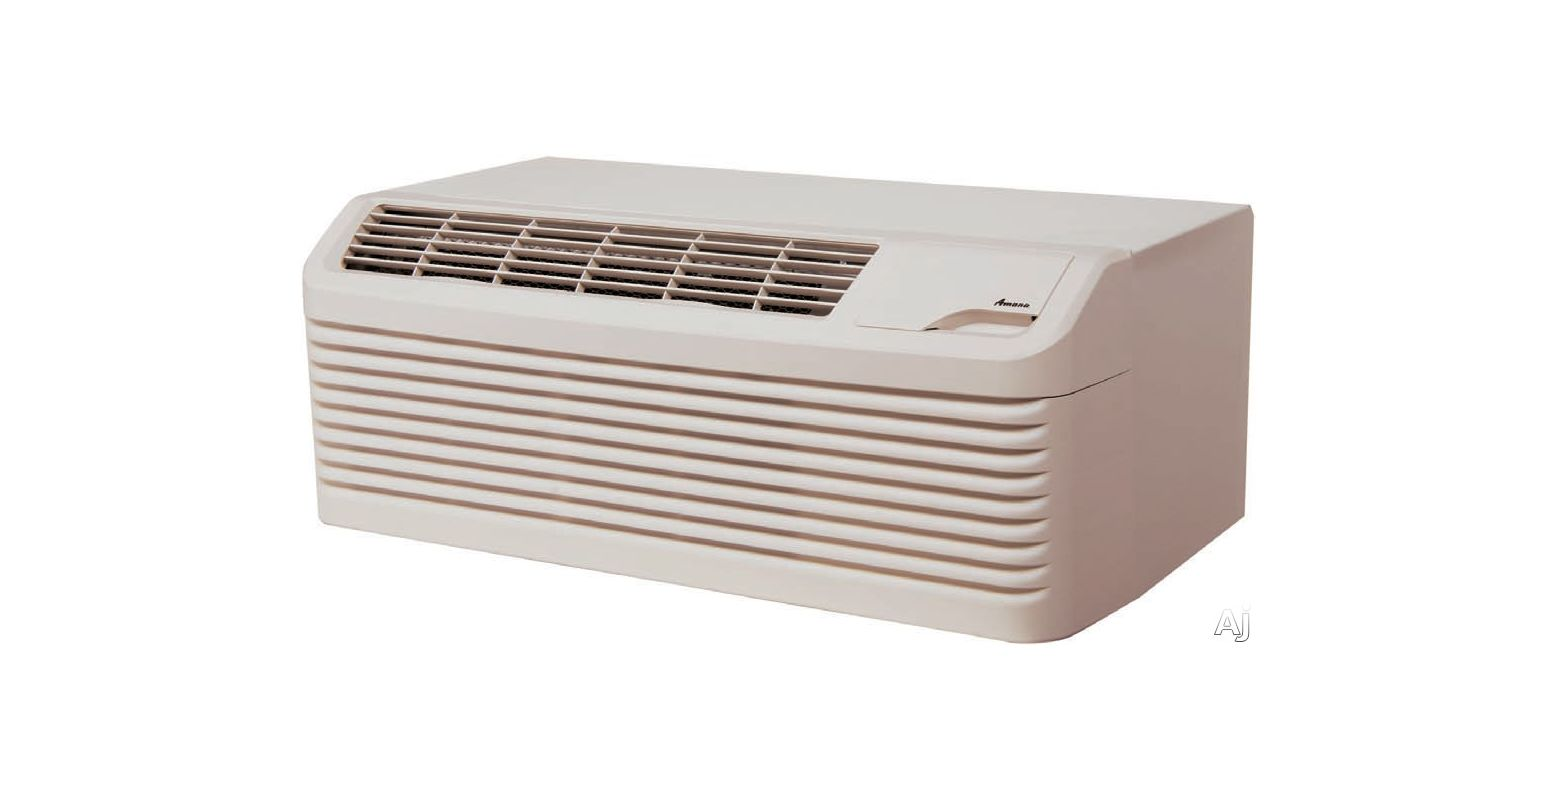 #755B4F Amana PTC153G35AXXX Stonewood Beige 15 000 BTU Packaged  Best 9883 15000 Portable Air Conditioner photos with 1557x800 px on helpvideos.info - Air Conditioners, Air Coolers and more